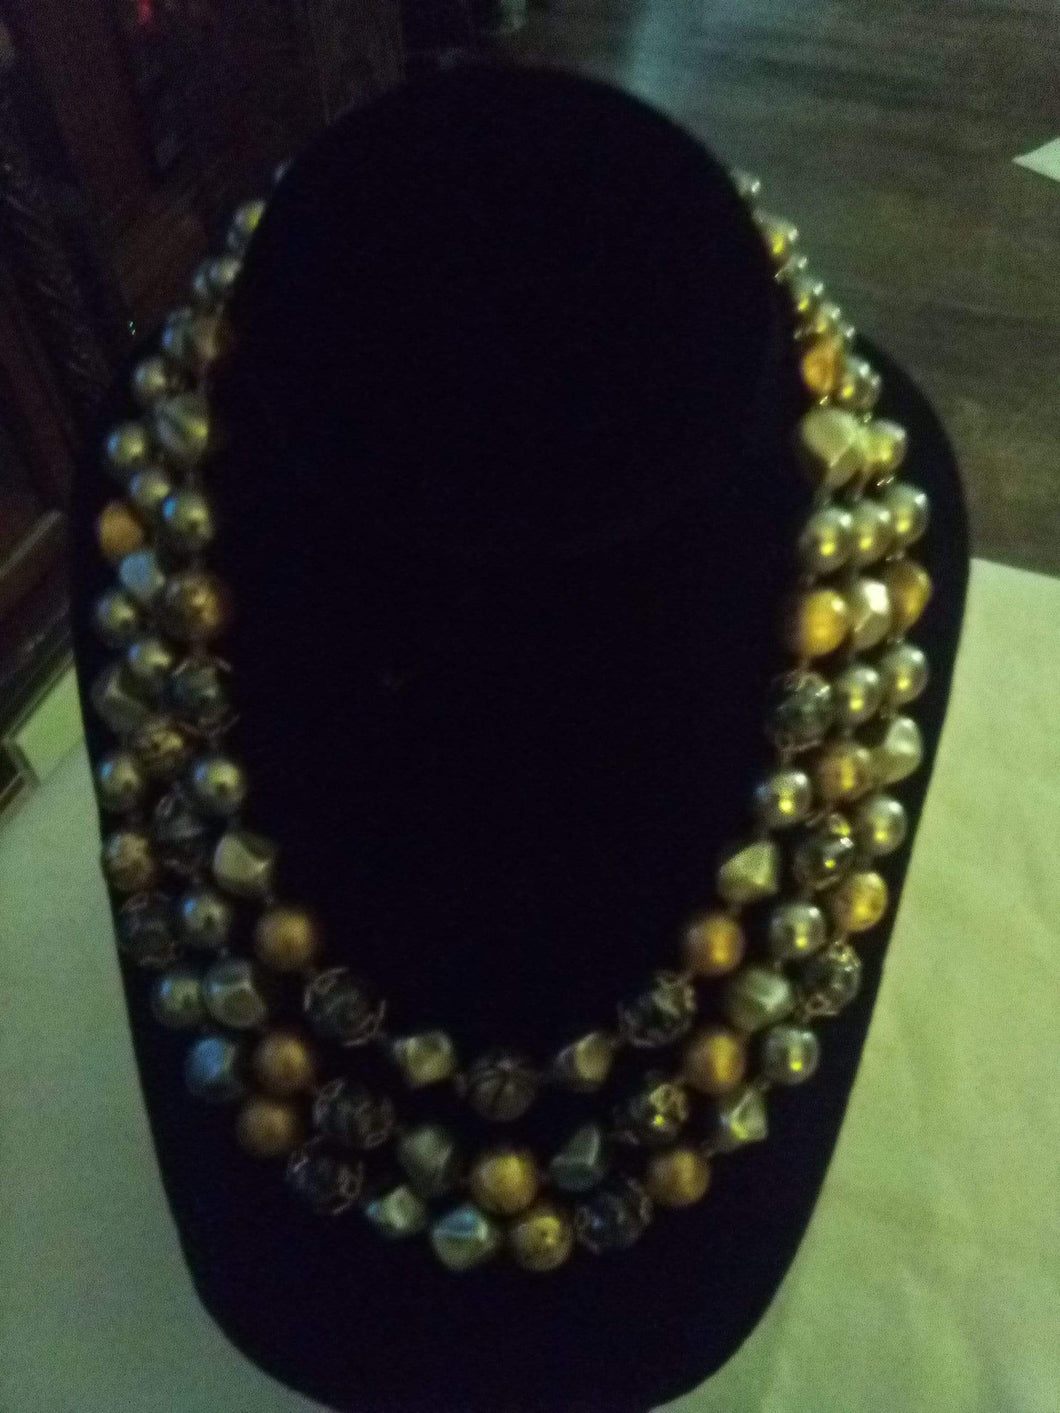 Unusual gold and silver tone necklace - B&P'sringsnthings